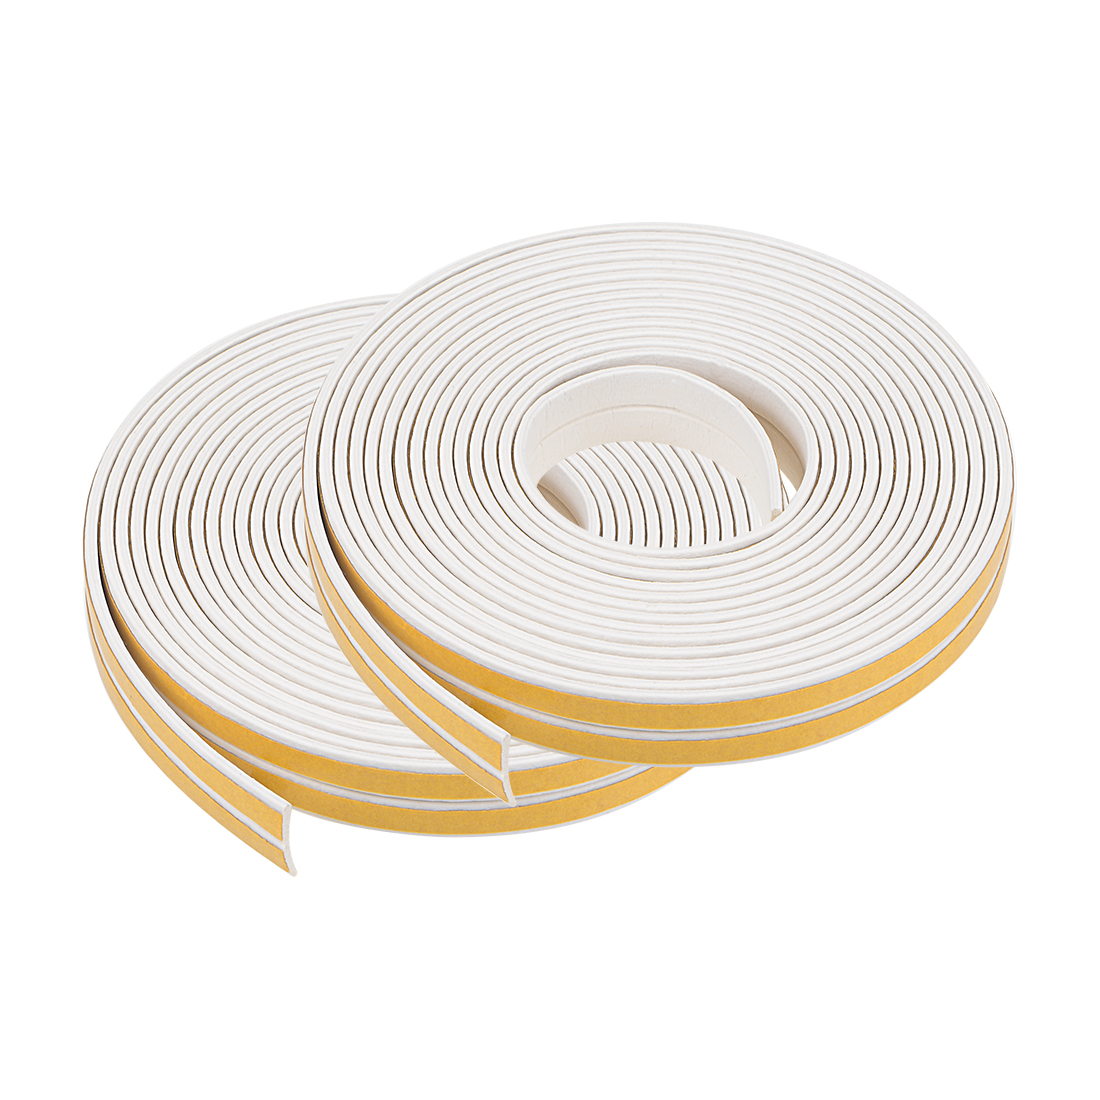 Foam Tape Adhesive 9mm Wide 2mm Thick, Total 52 Feet White 4Pcs